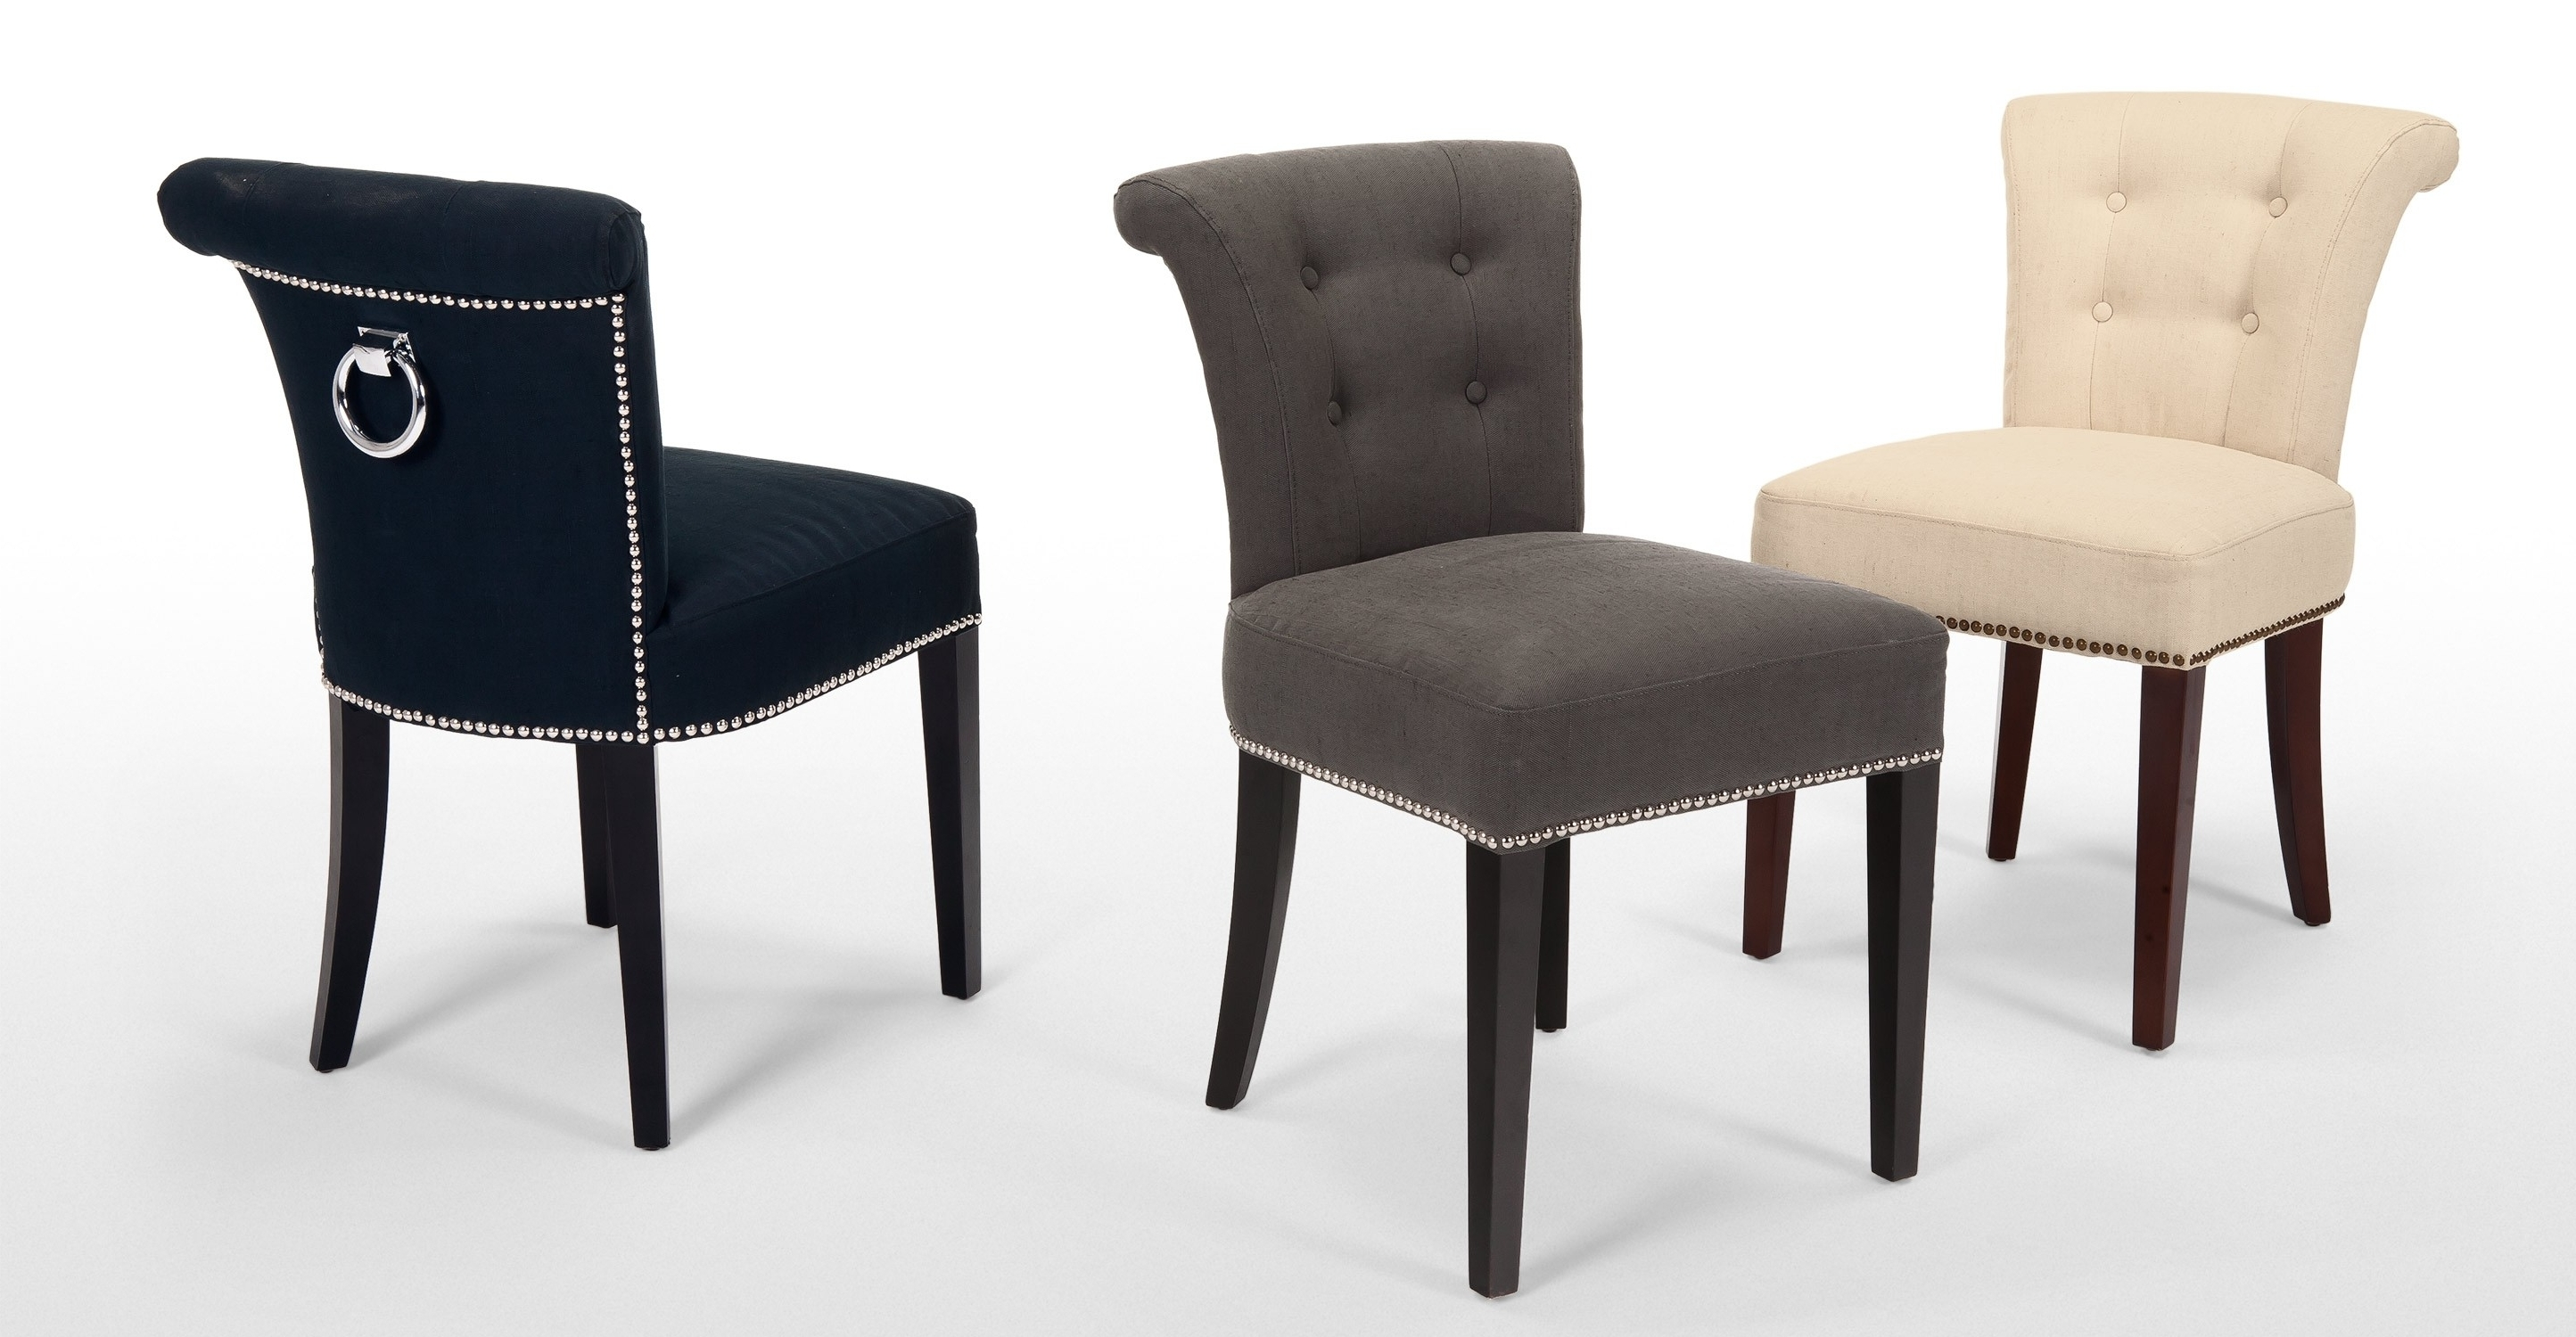 Assorted Color Dining Chair With Fabric Cover And Tufted Design Also Within Latest Dark Olive Velvet Iron Dining Chairs (View 13 of 20)